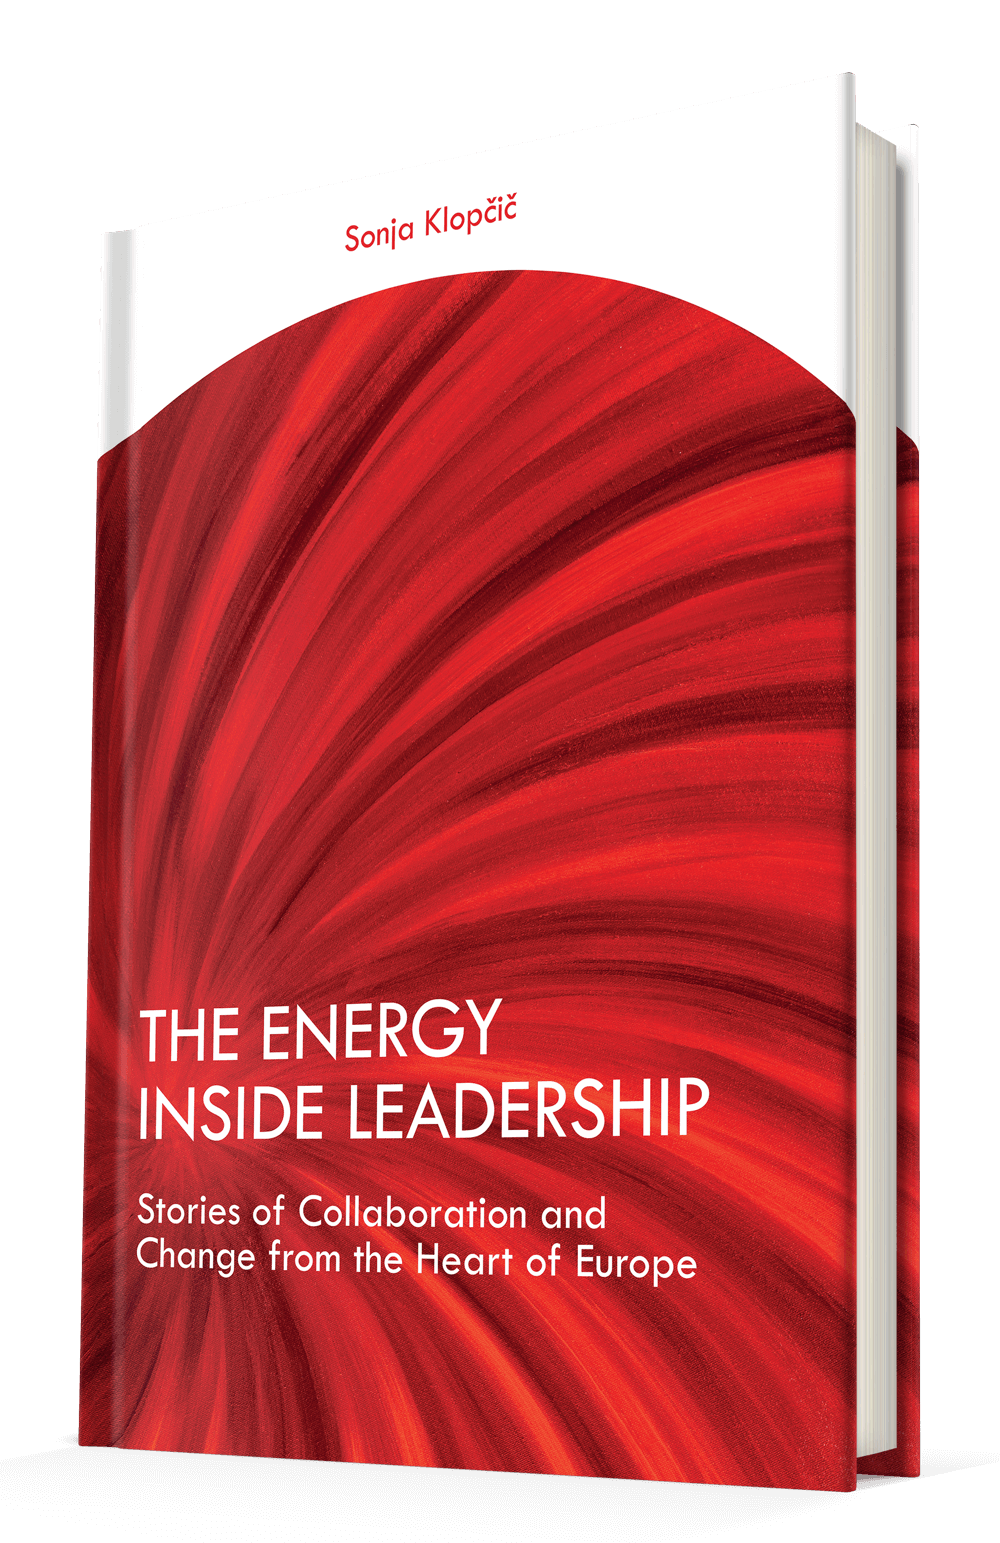 Internet of Leaders: True Stories of Collaborative Leadership form in Heart of Europe